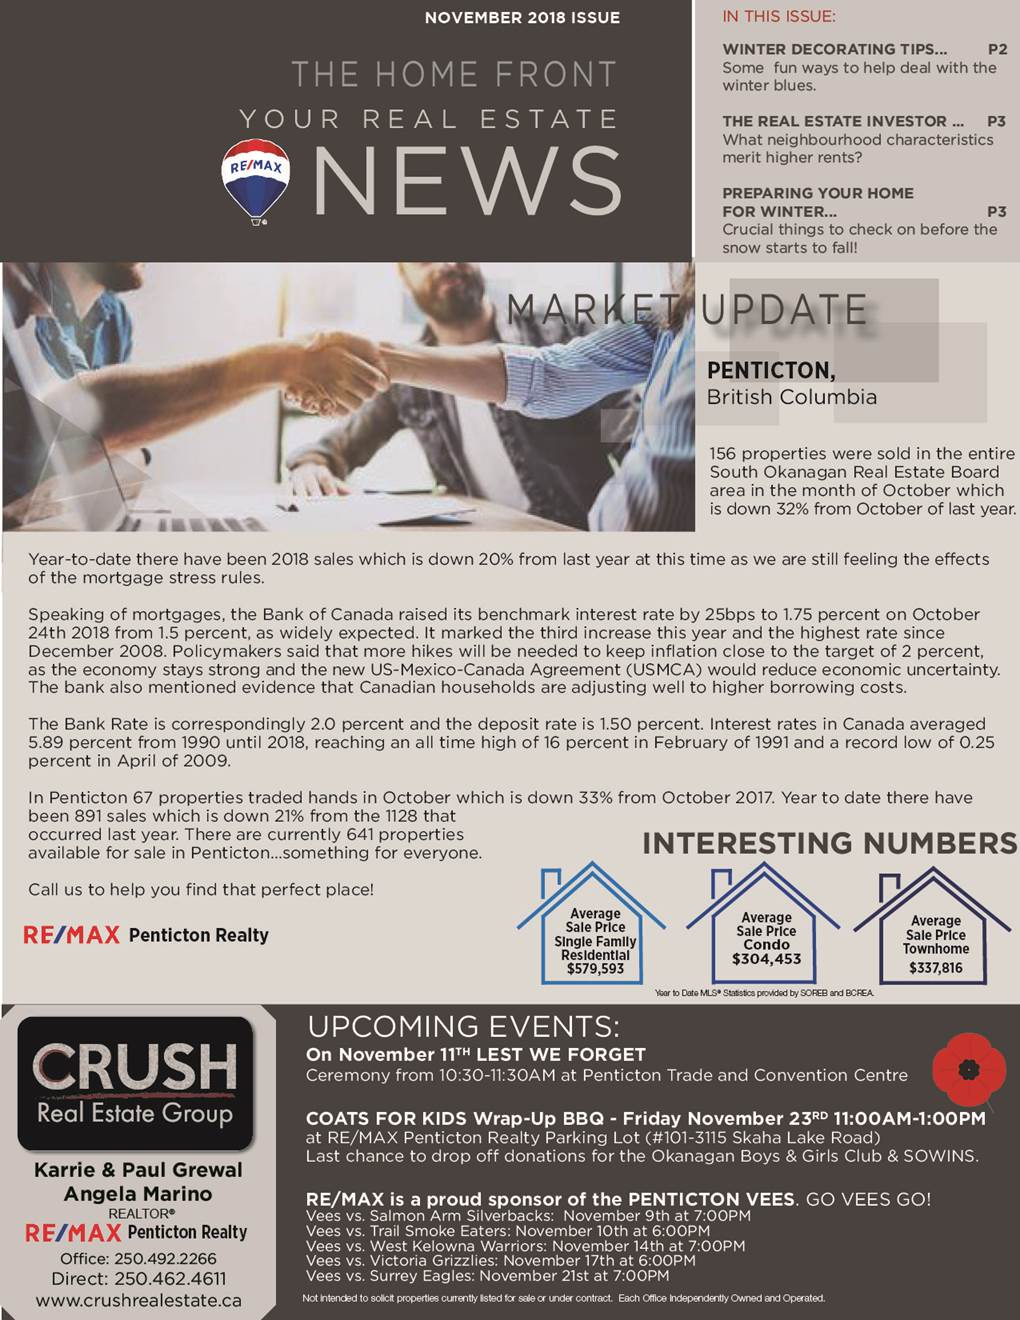 RE/MAX November Newsletter